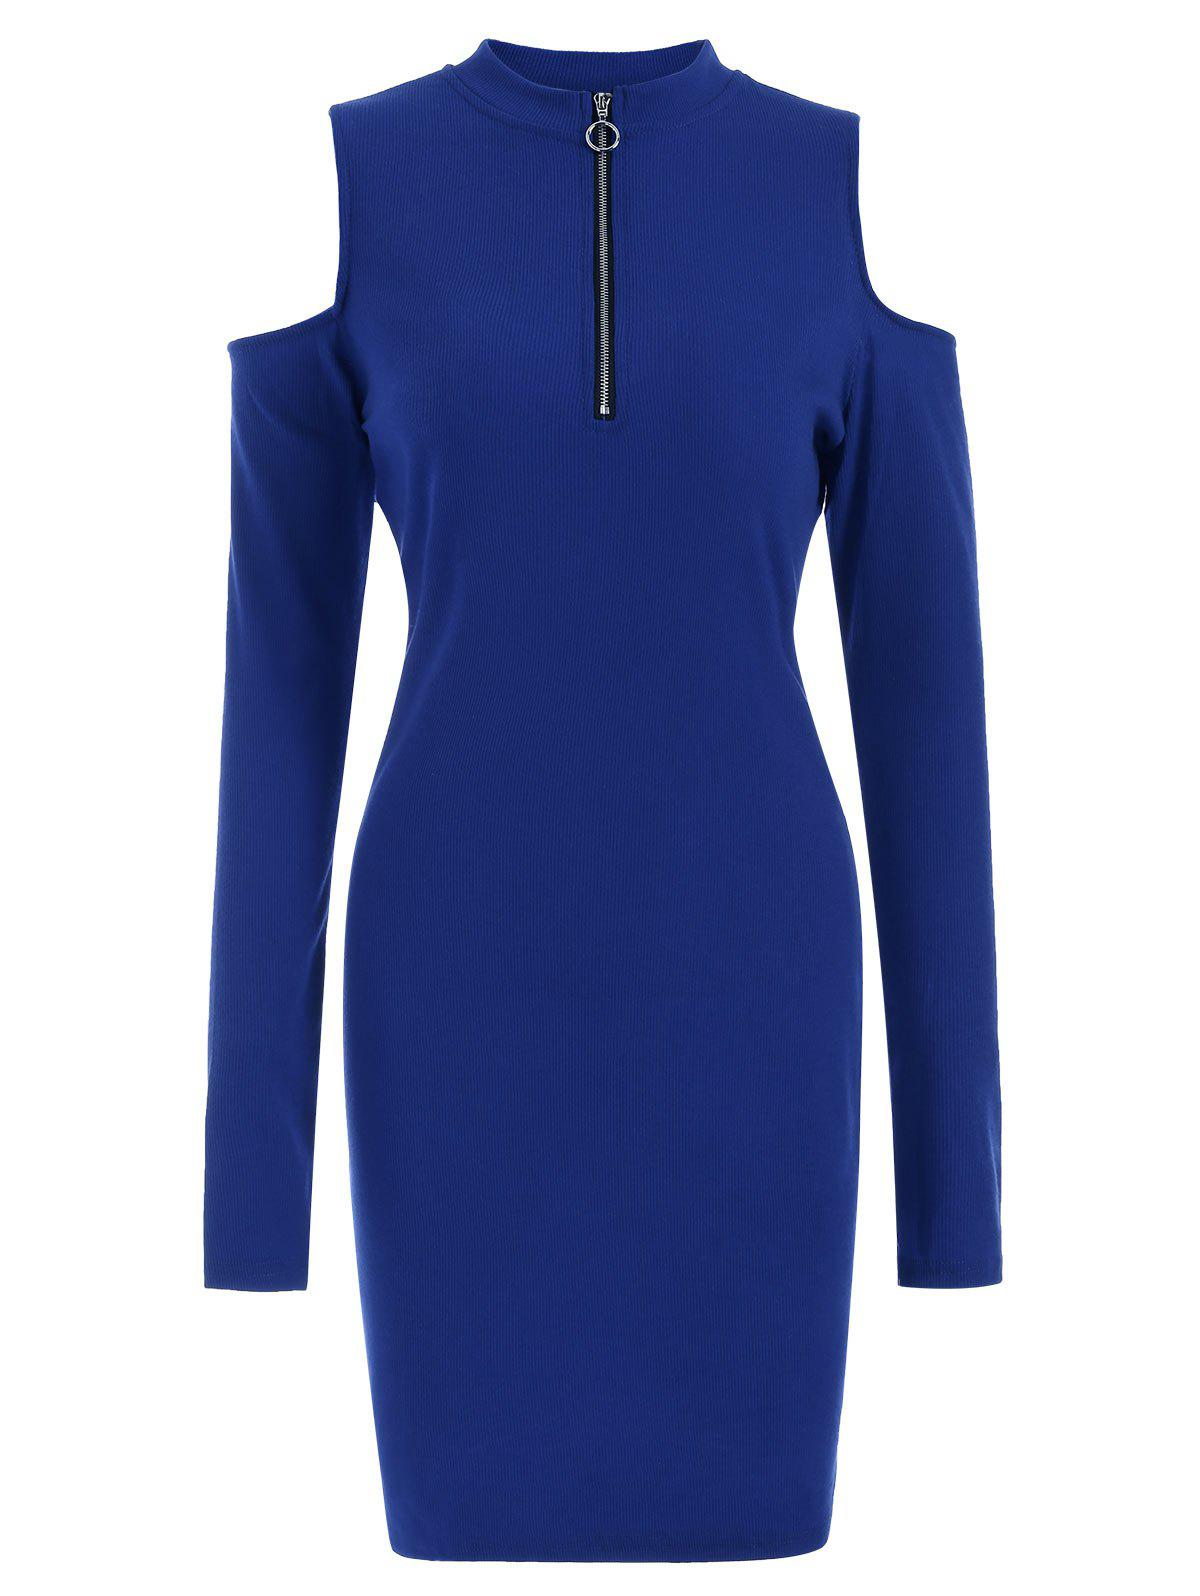 Best Half Zip Cold Shoulder Long Sleeves Bodycon Jumper Dress